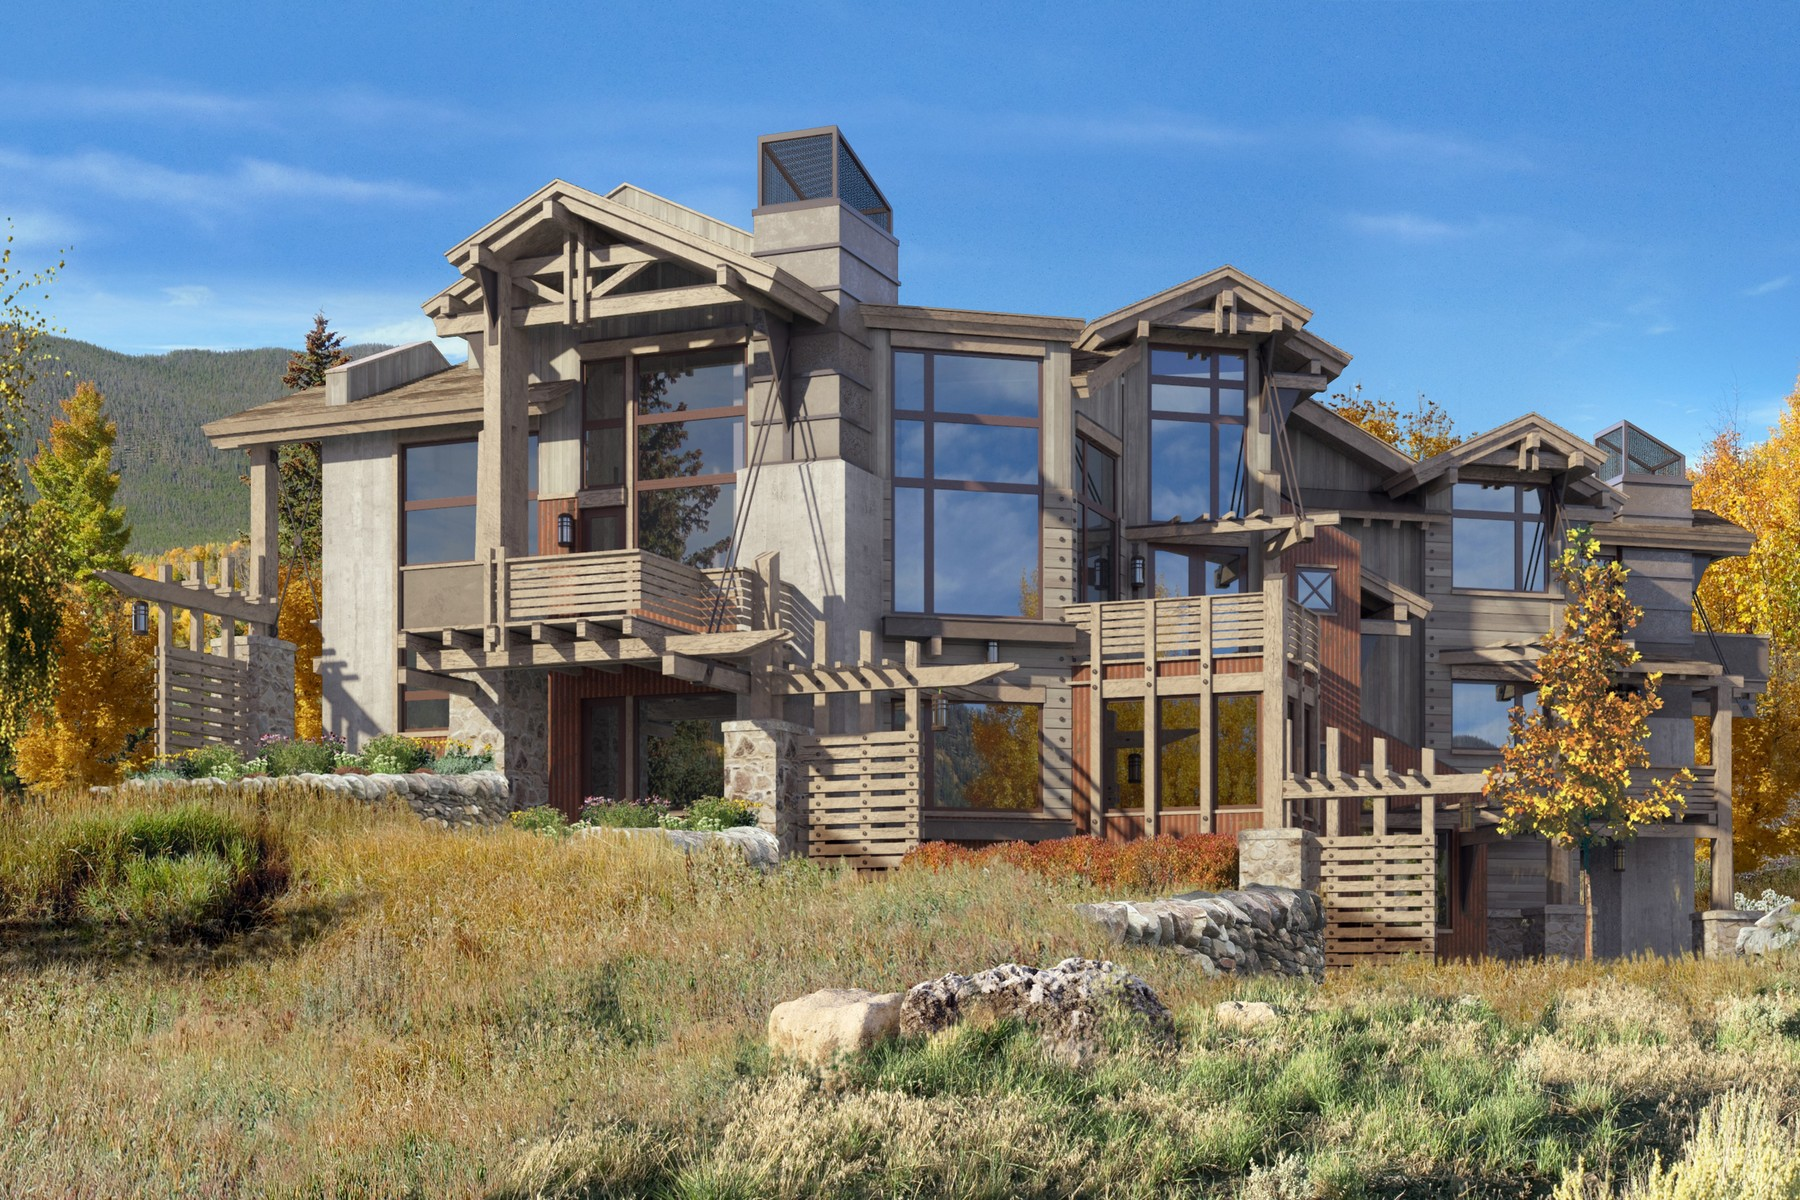 Single Family Home for Sale at Resolution Homes 270 Giberson Road Frisco, Colorado, 80443 United States